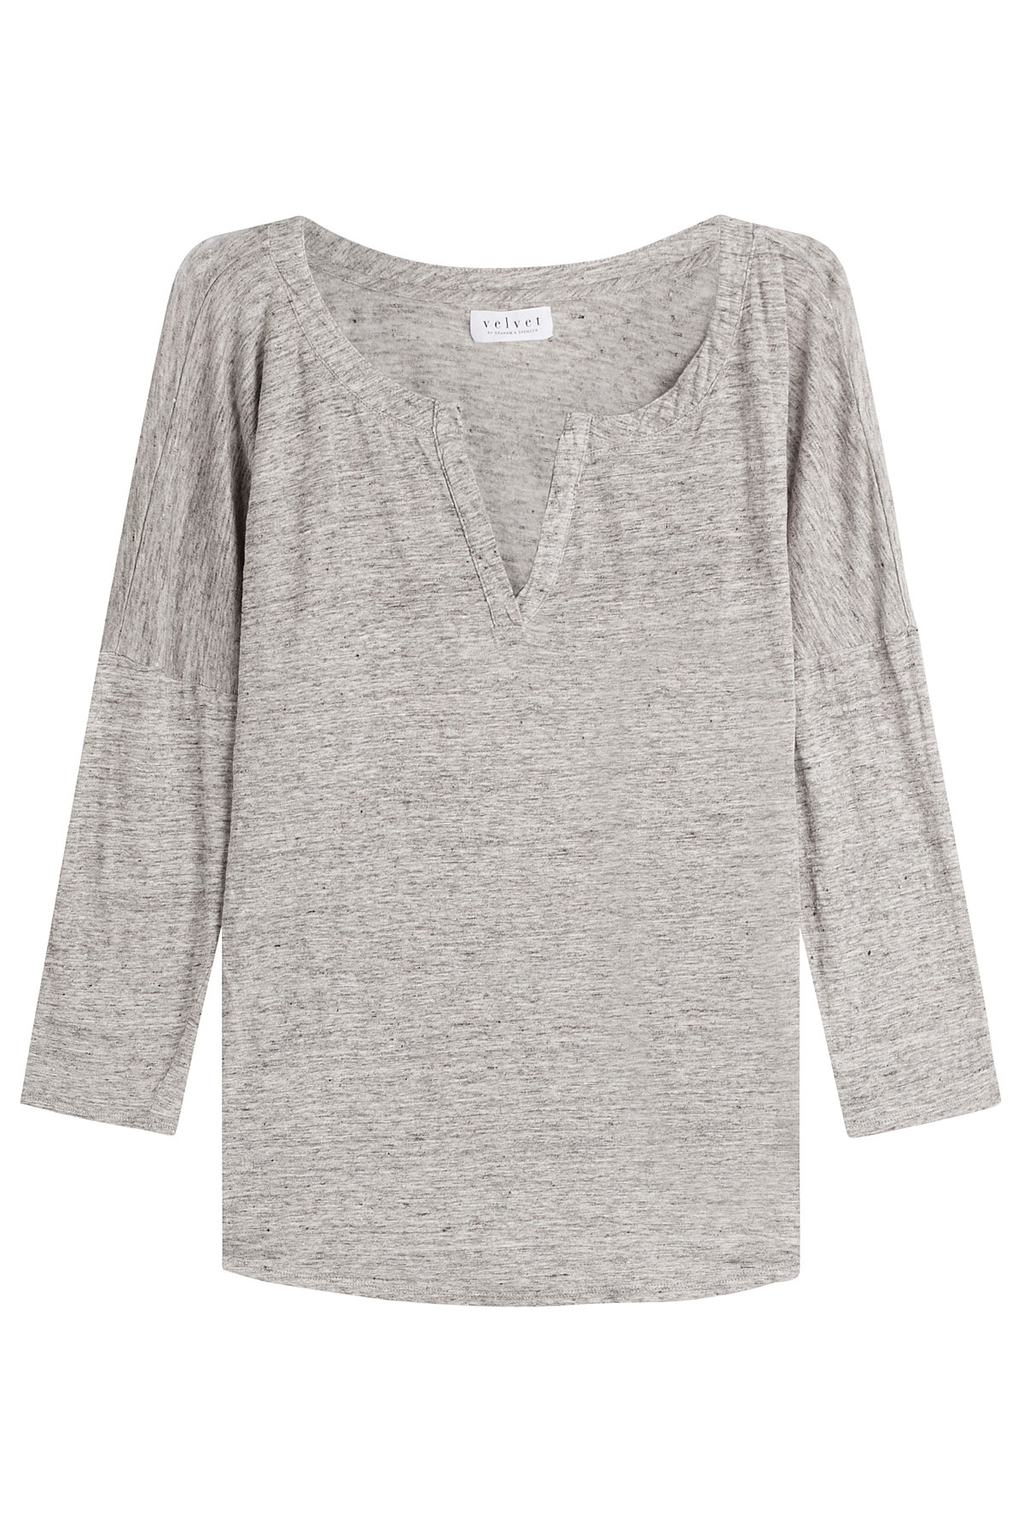 Linen Top Grey - predominant colour: mid grey; occasions: casual; length: standard; style: top; neckline: collarstand & mandarin with v-neck; fibres: linen - 100%; fit: body skimming; sleeve length: 3/4 length; sleeve style: standard; texture group: linen; pattern type: fabric; pattern size: light/subtle; pattern: marl; season: s/s 2016